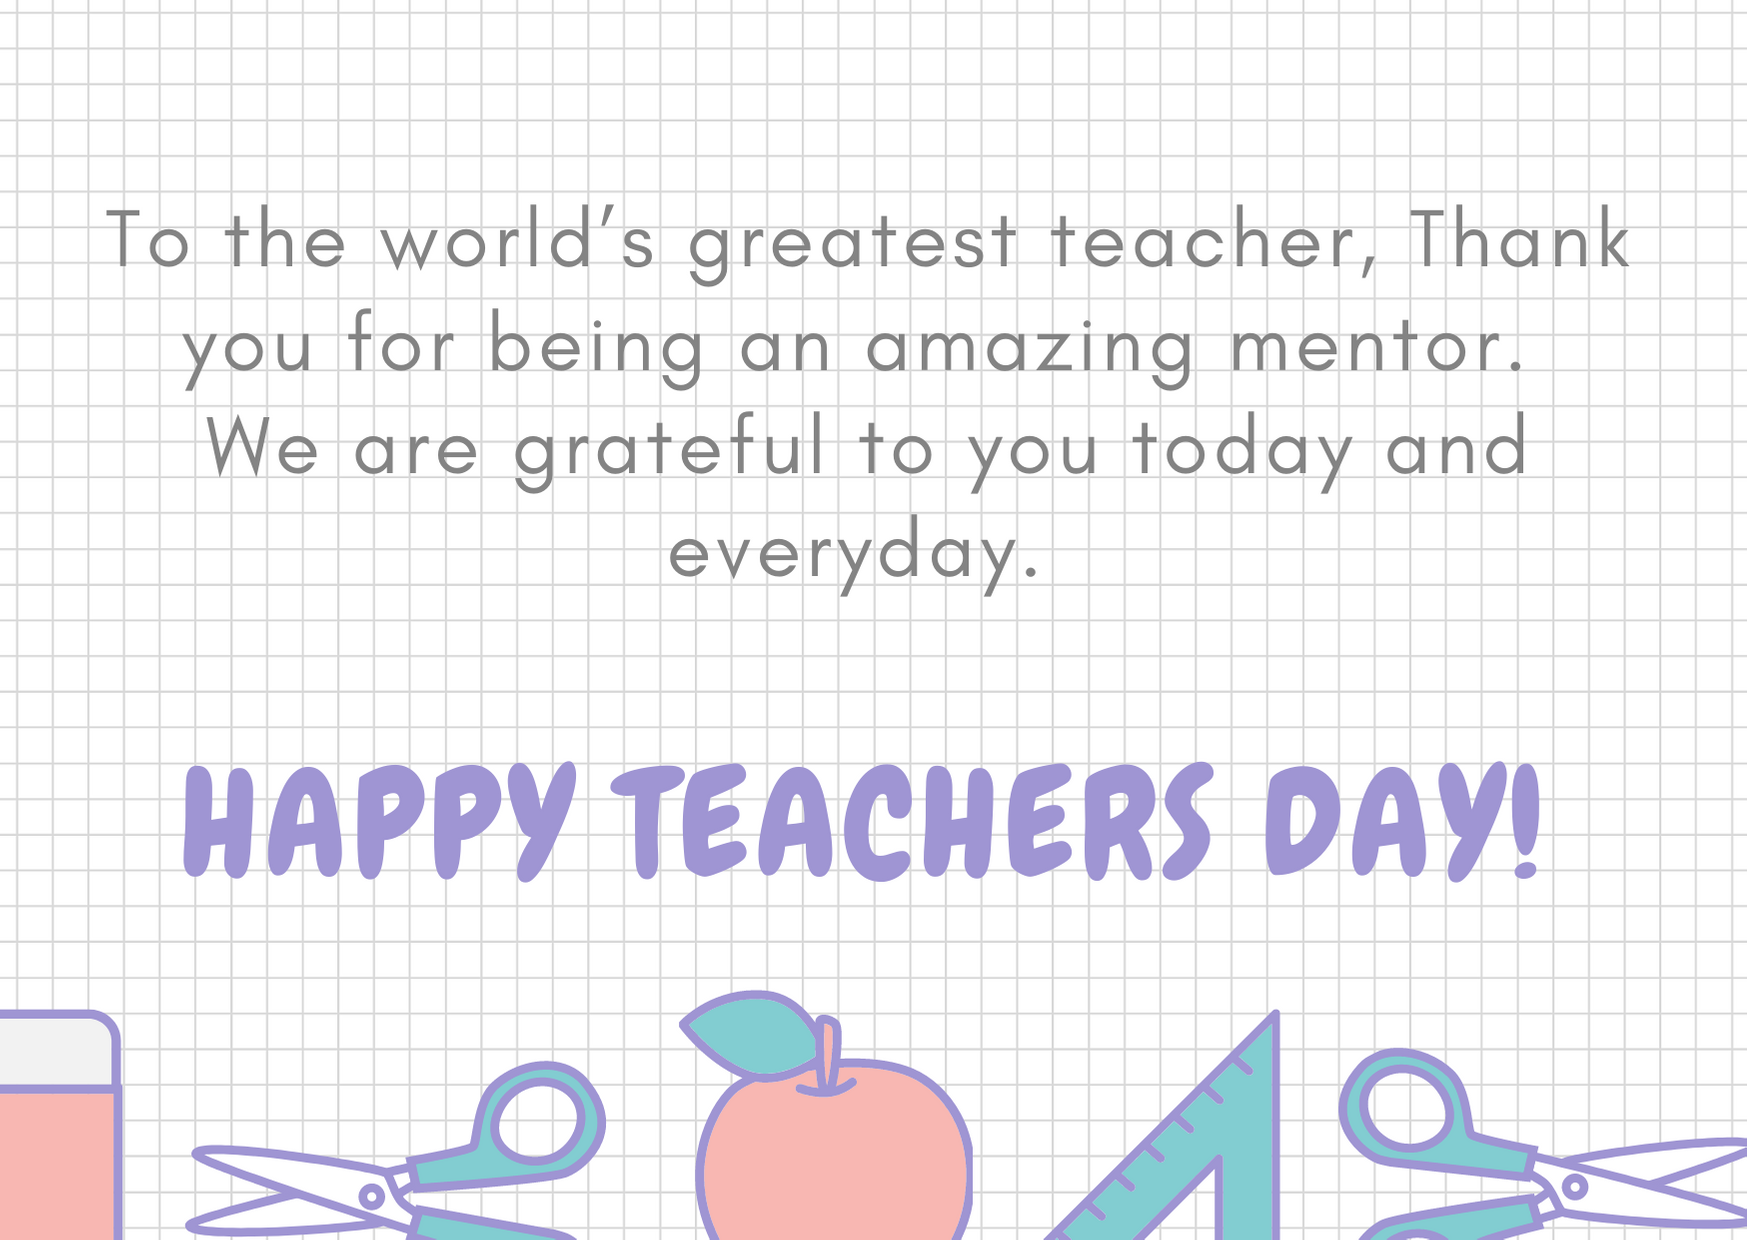 teachers day wishes thank you